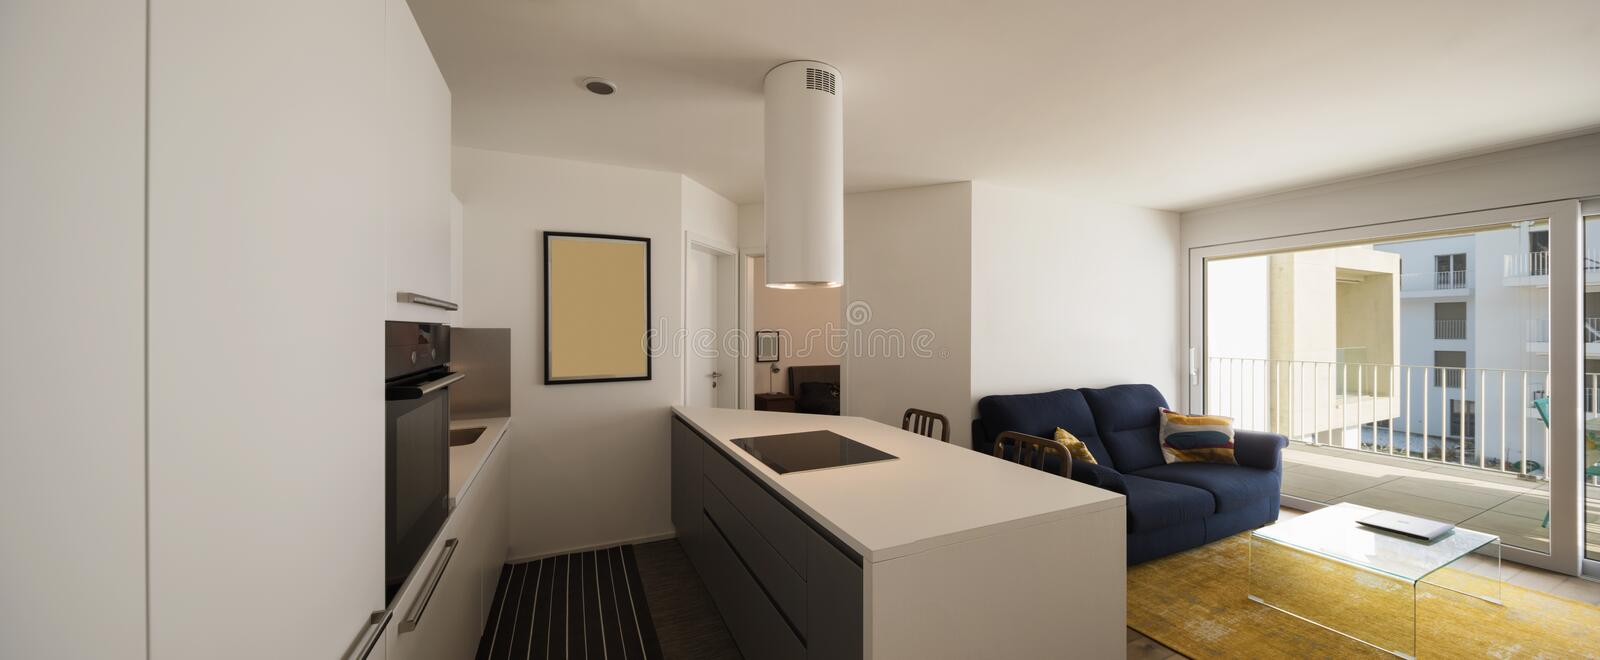 Elegant kitchen and living room in modern apartment royalty free stock photos